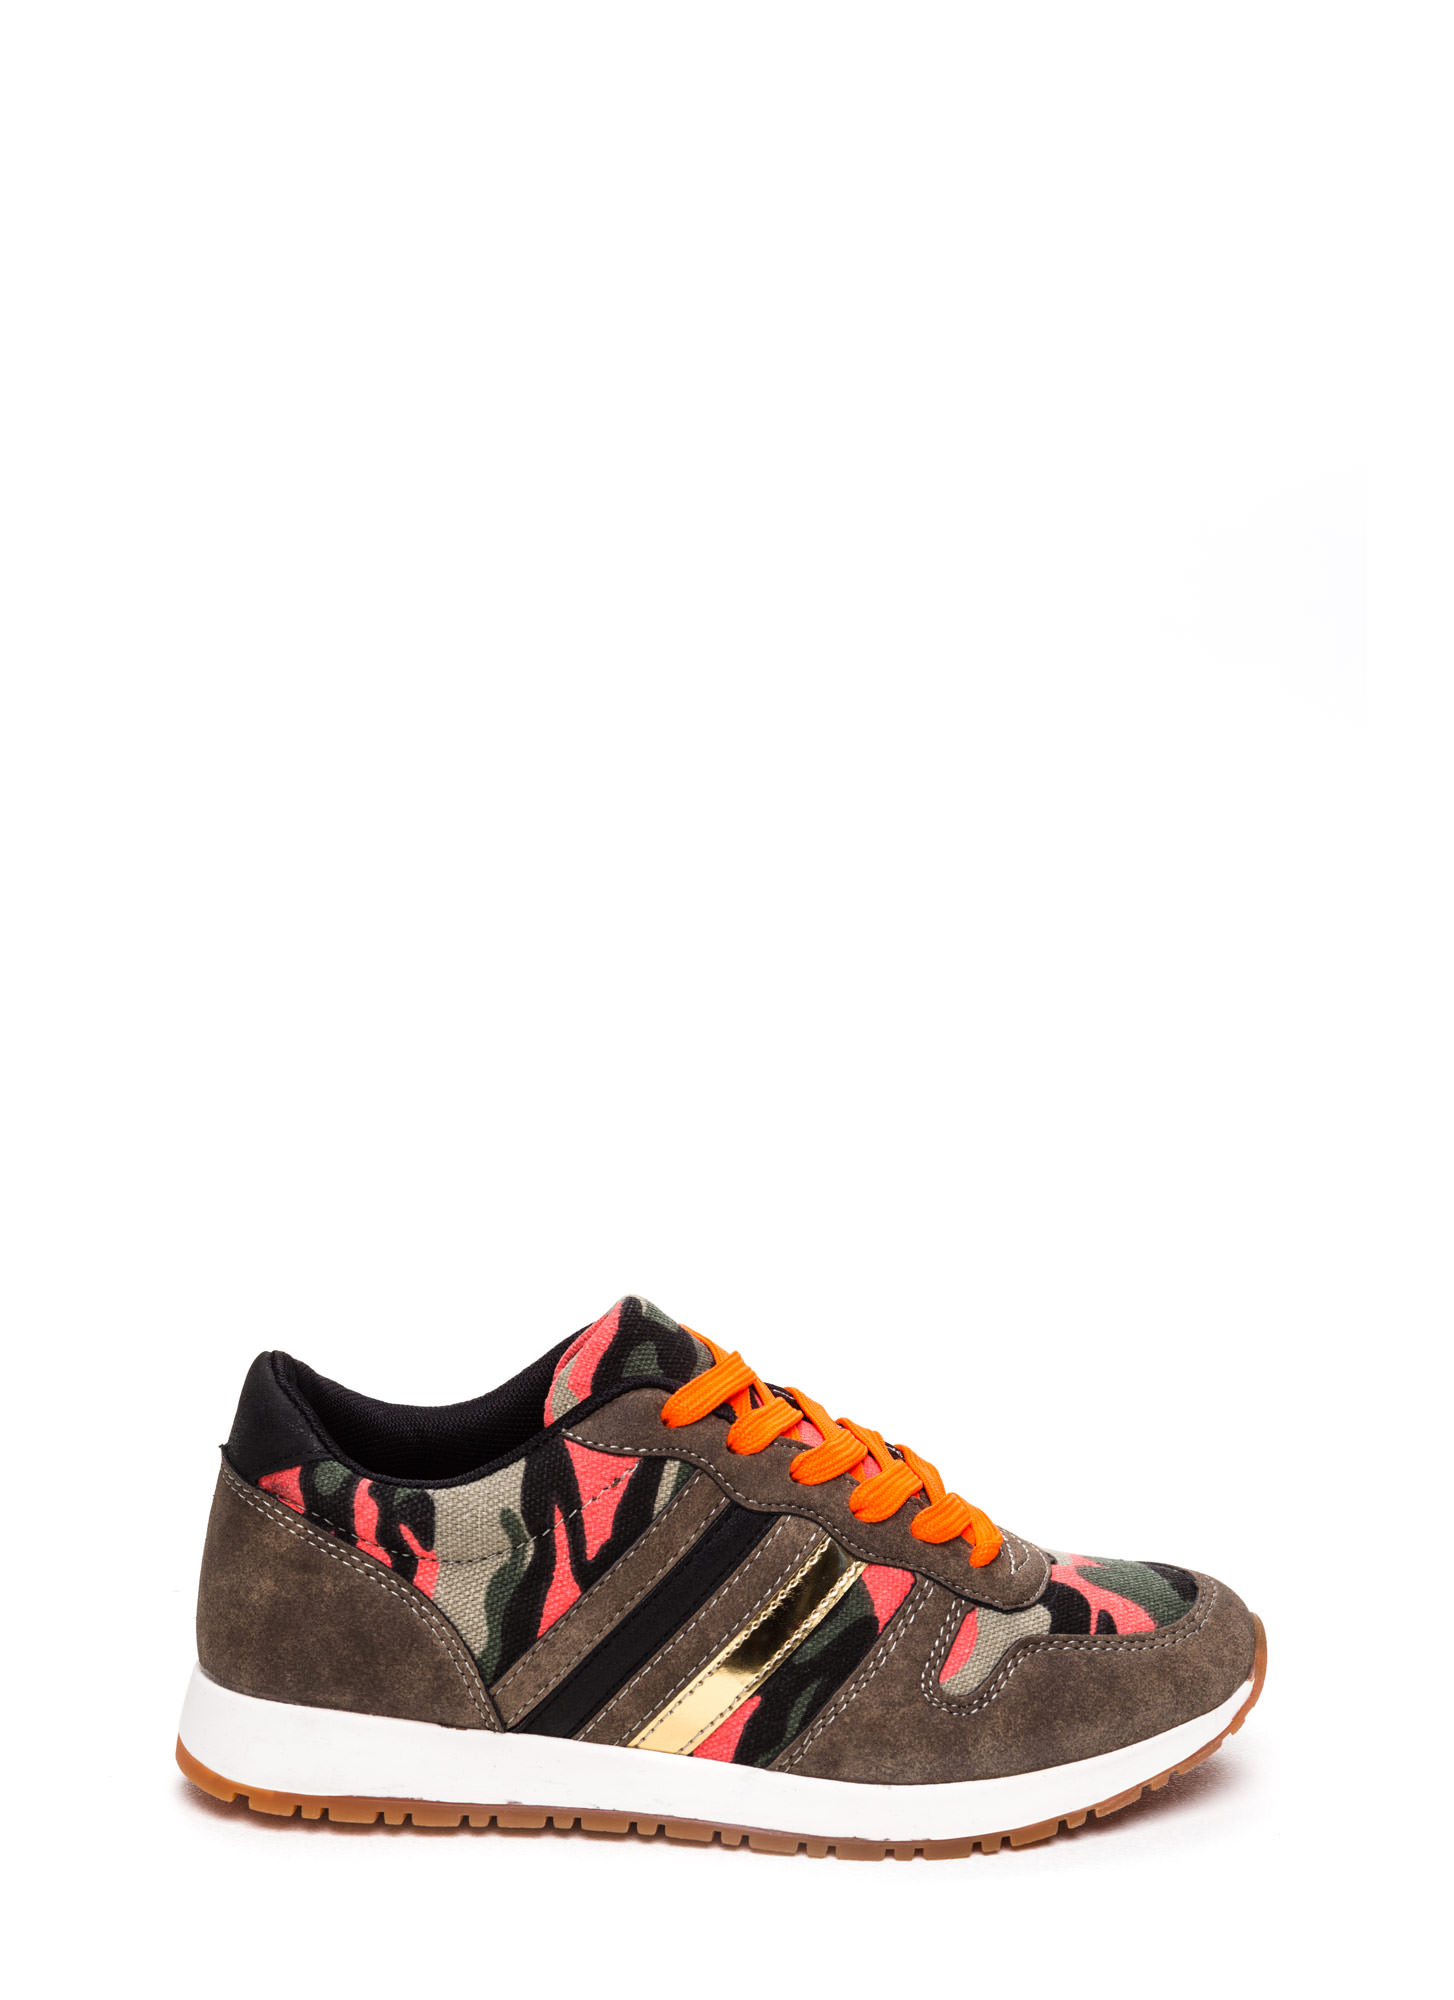 Free shipping wmns maxs90VT athletic shoes women jungle camo trainers wmns digital camouflage running shoes camo tennis shoes